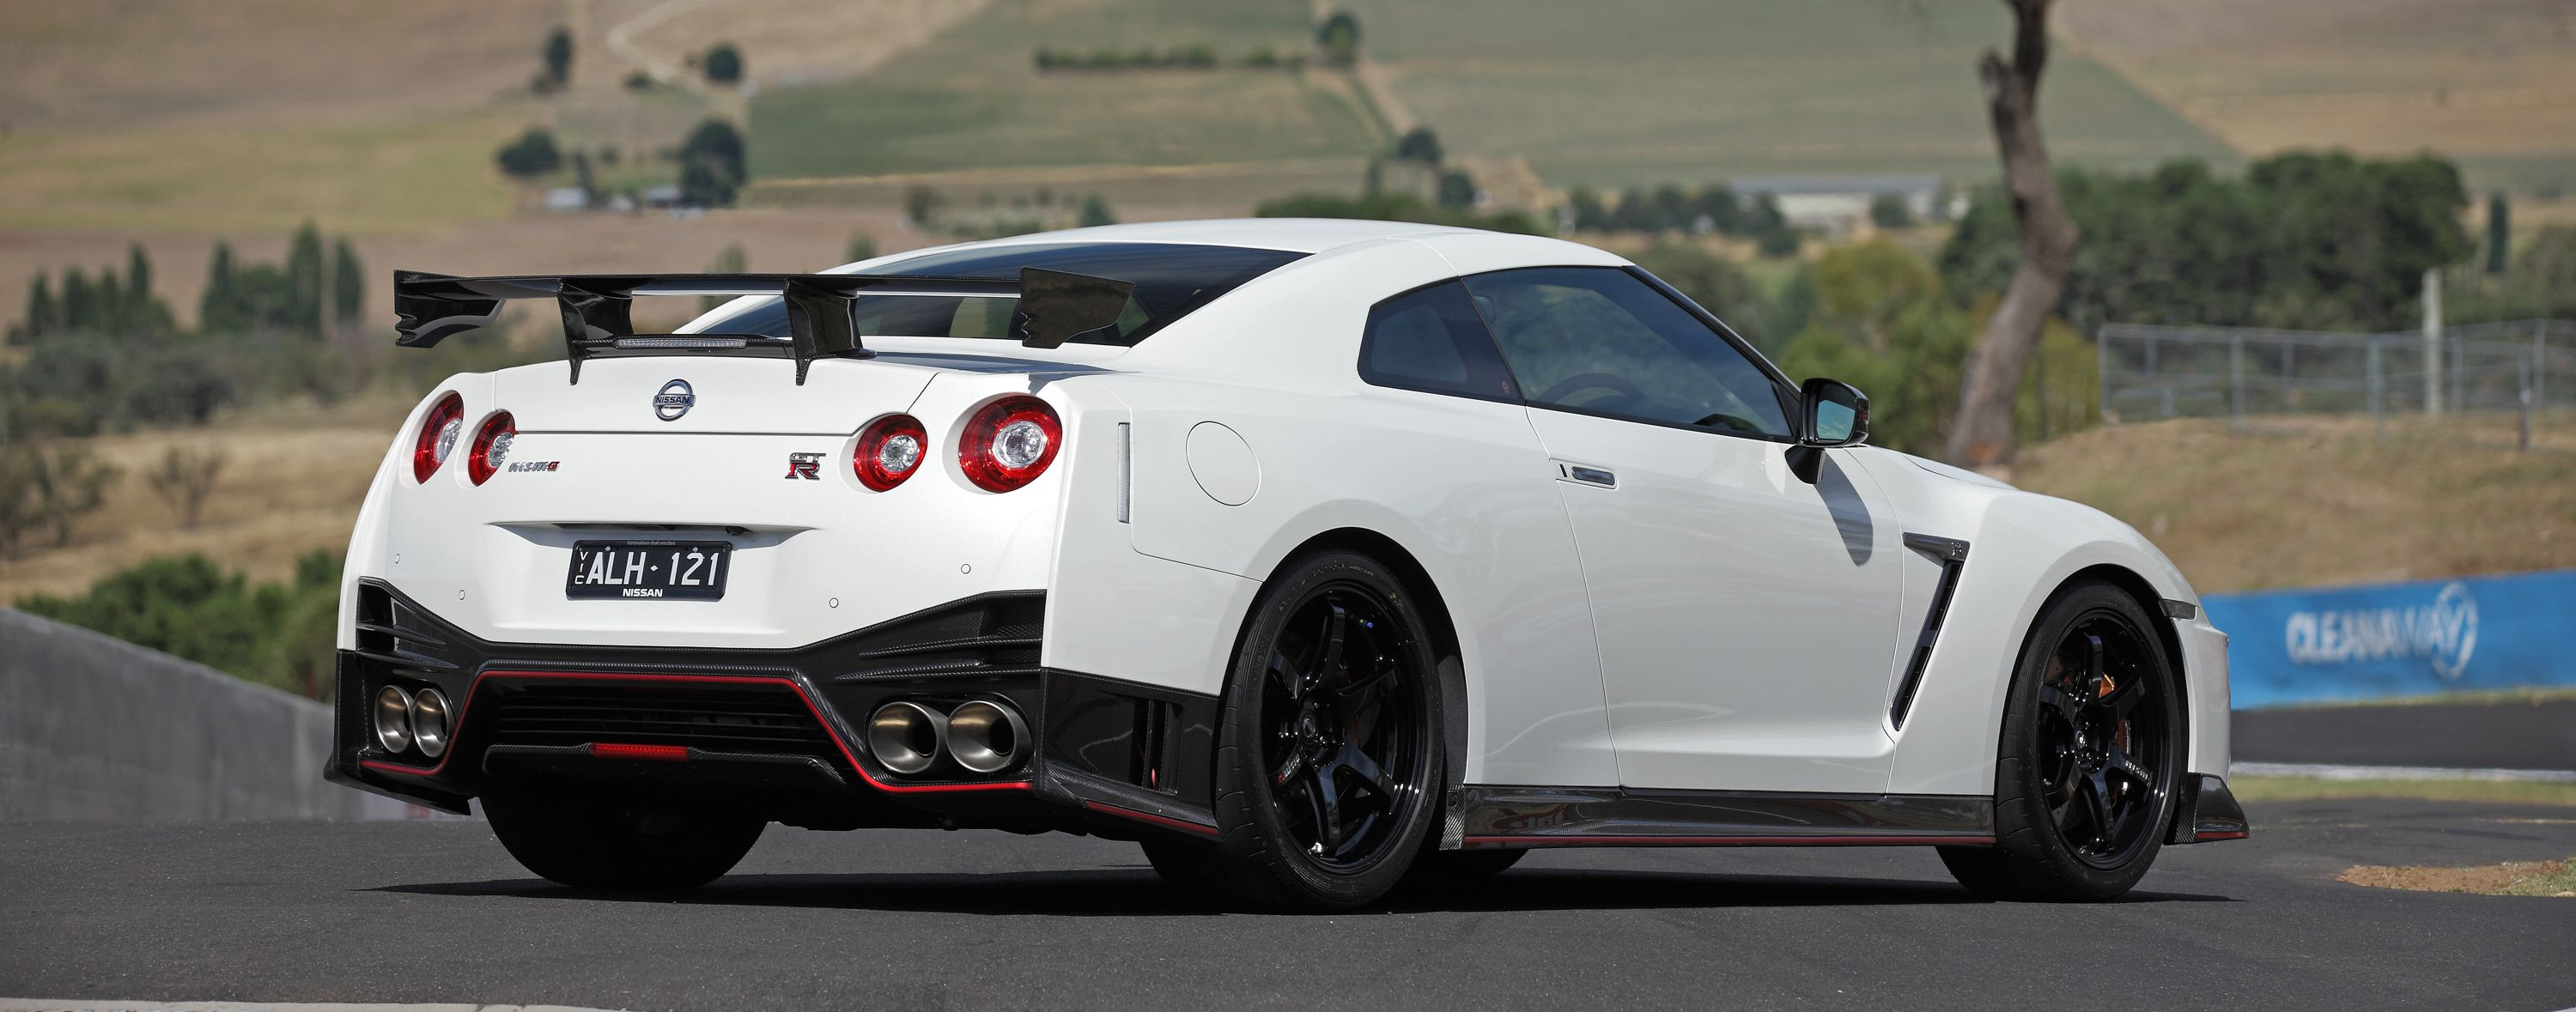 Nissan gt photo - 7